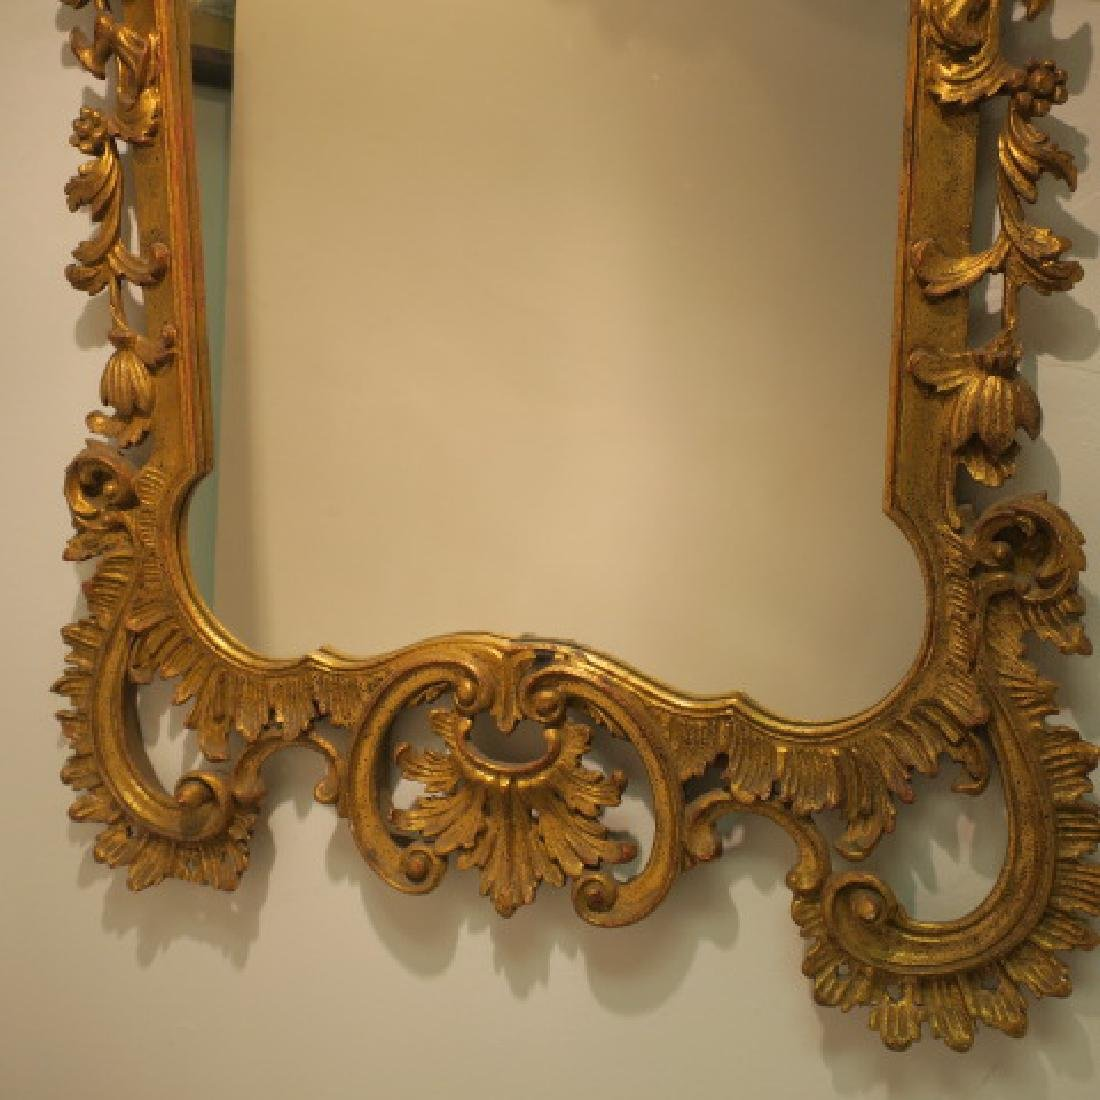 Large Gold Acanthus Leaf Rococo Mirror: - 3